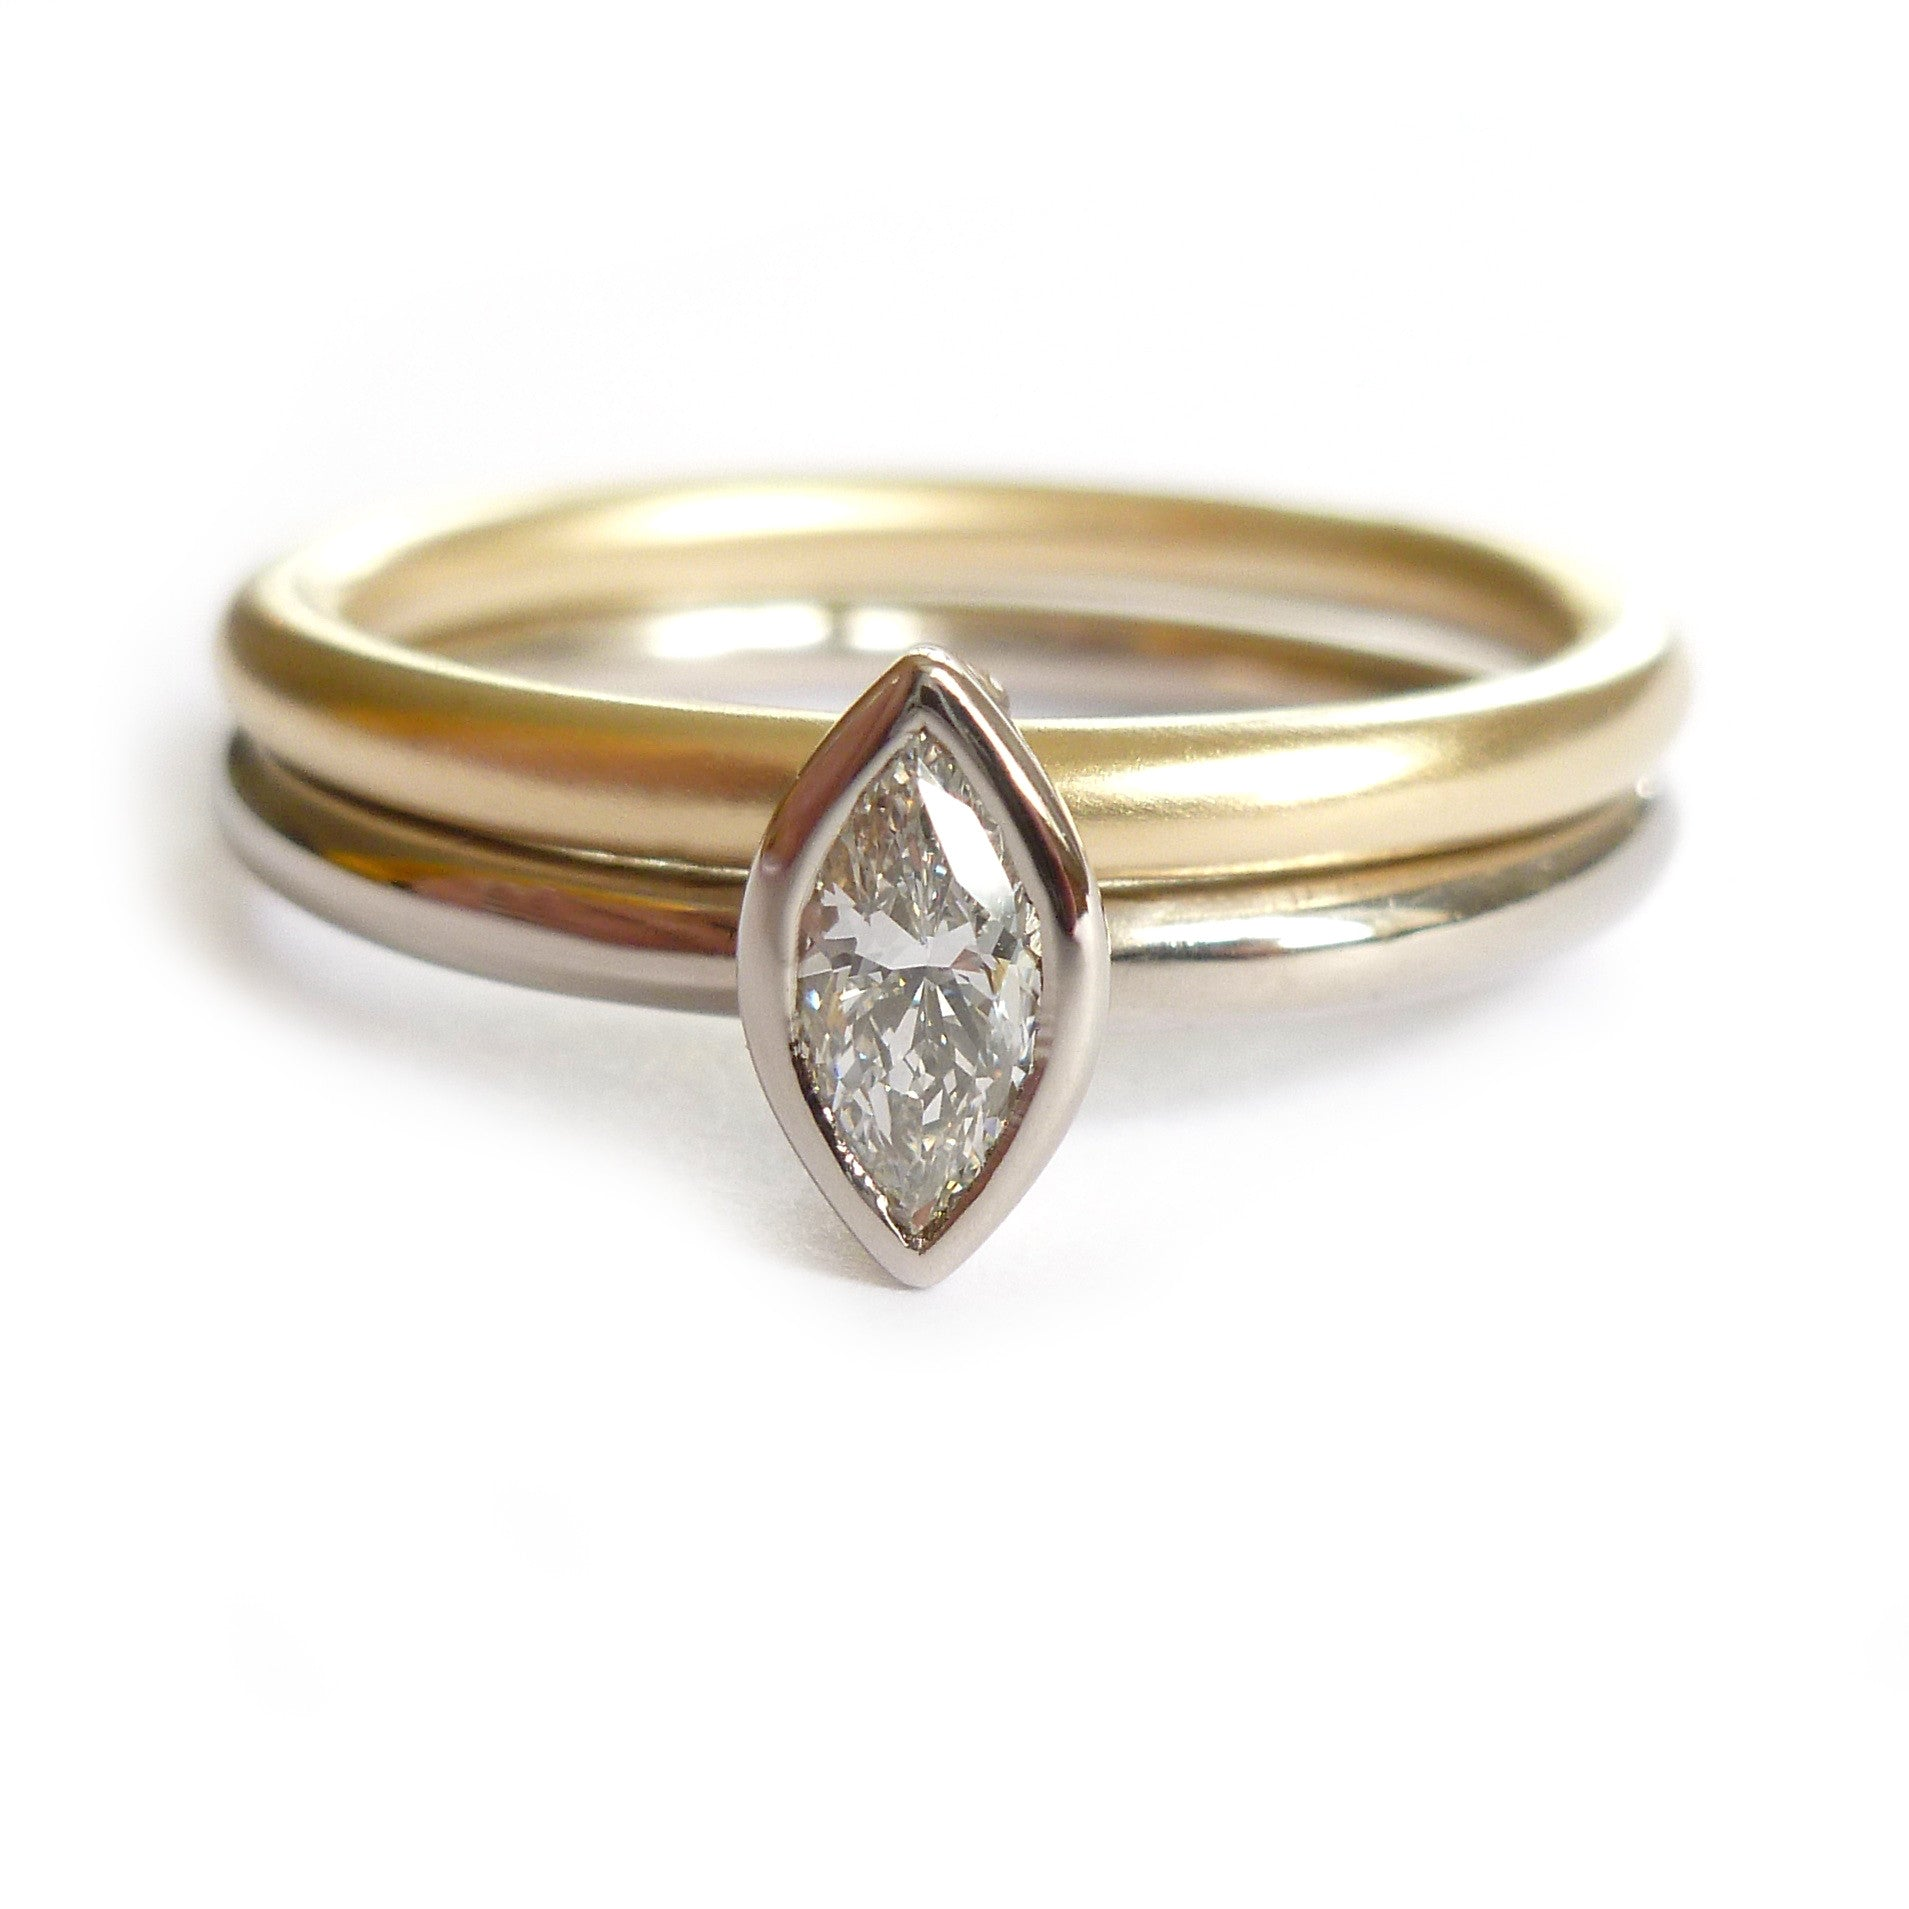 Two linking rings joined together making a special engagement ring. Multi band ring or interlocking ring, sometimes called double band ring too. Contemporary.